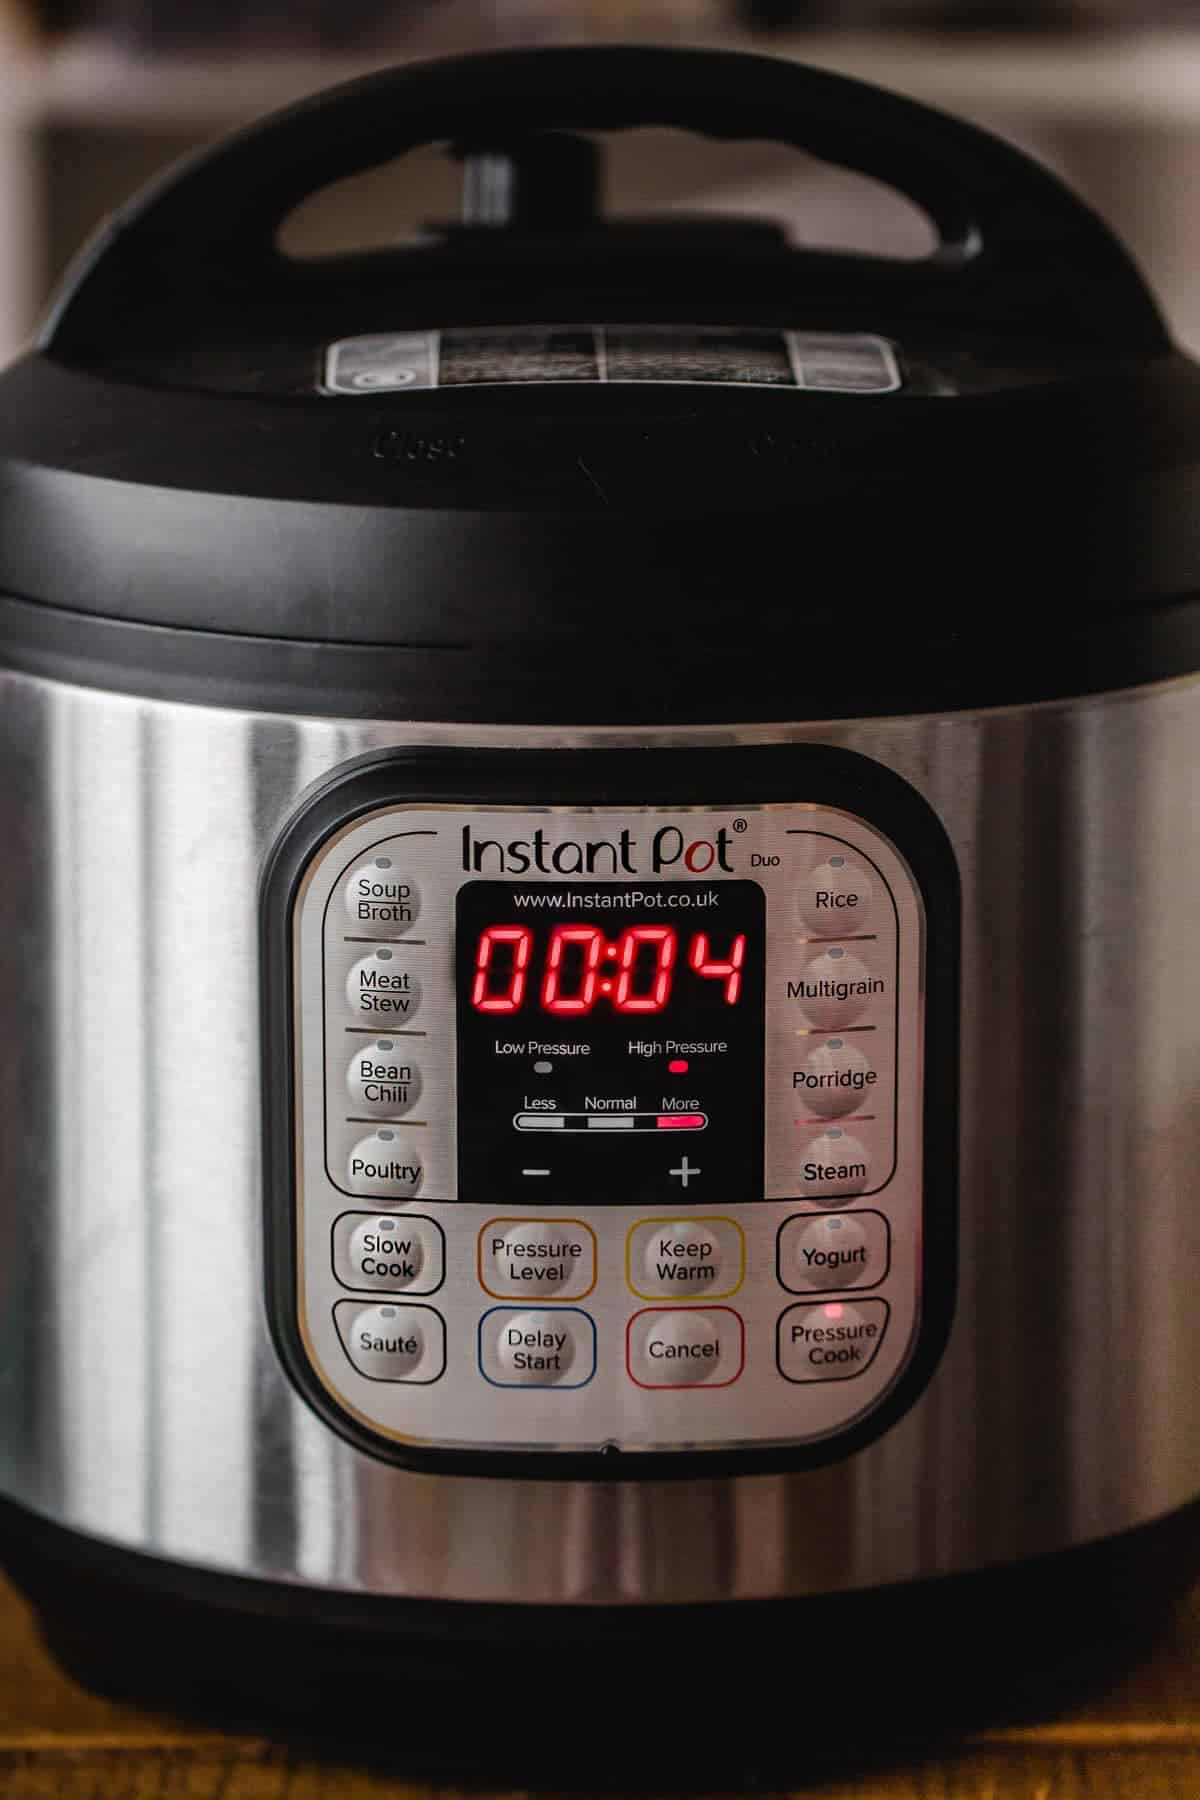 An Instant Pot set art 4 minutes to cook